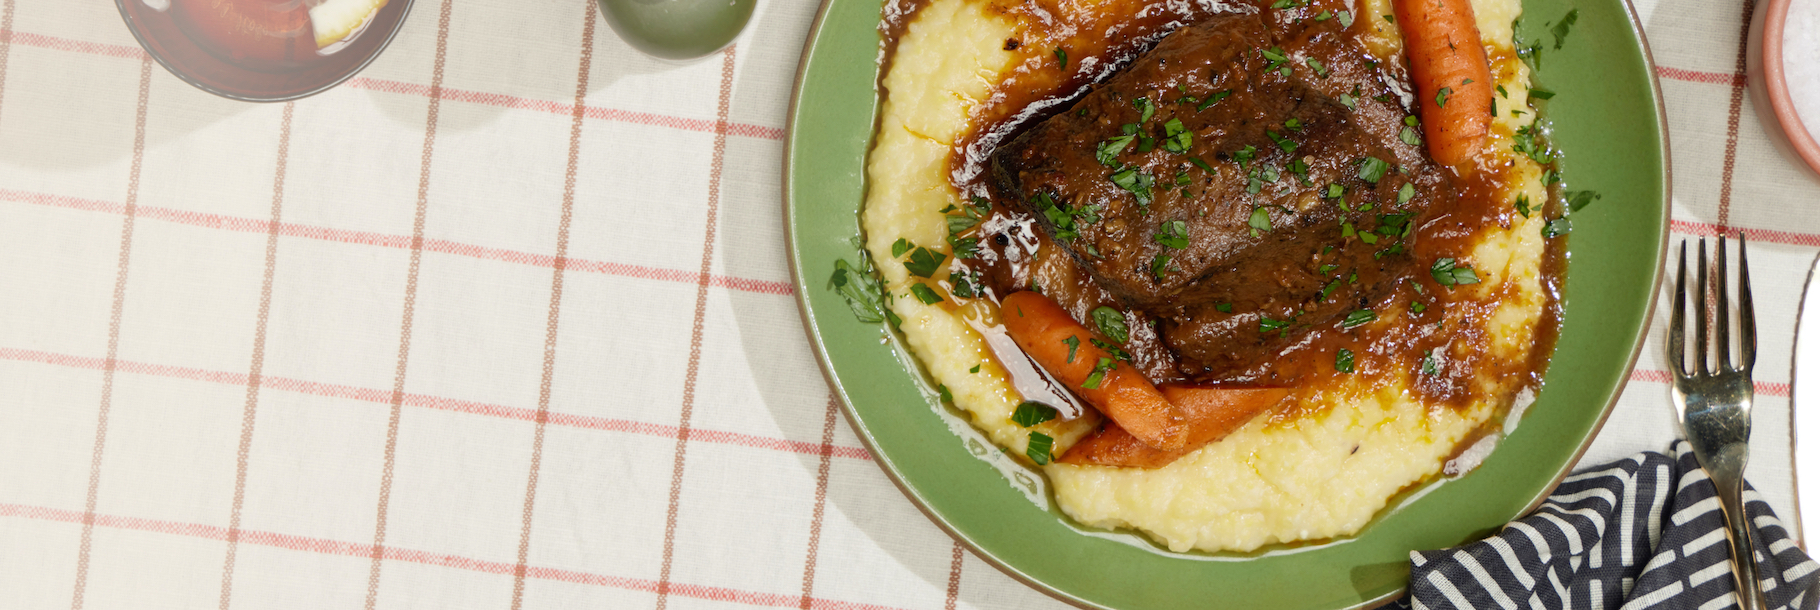 Advertise with Instacart